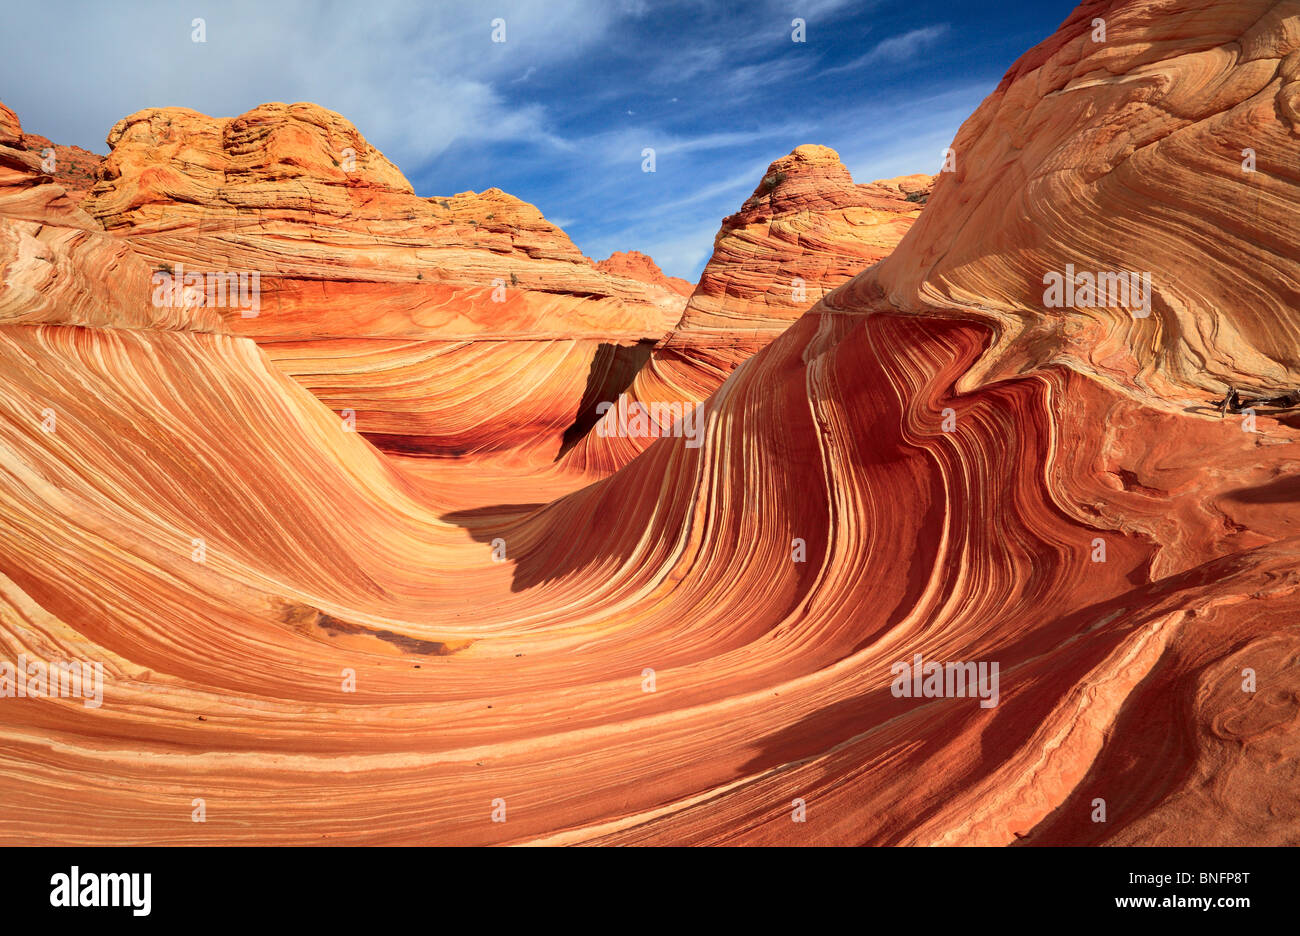 Eroded sandstone formations in Vermilion Cliffs National Monument, Arizona - Stock Image